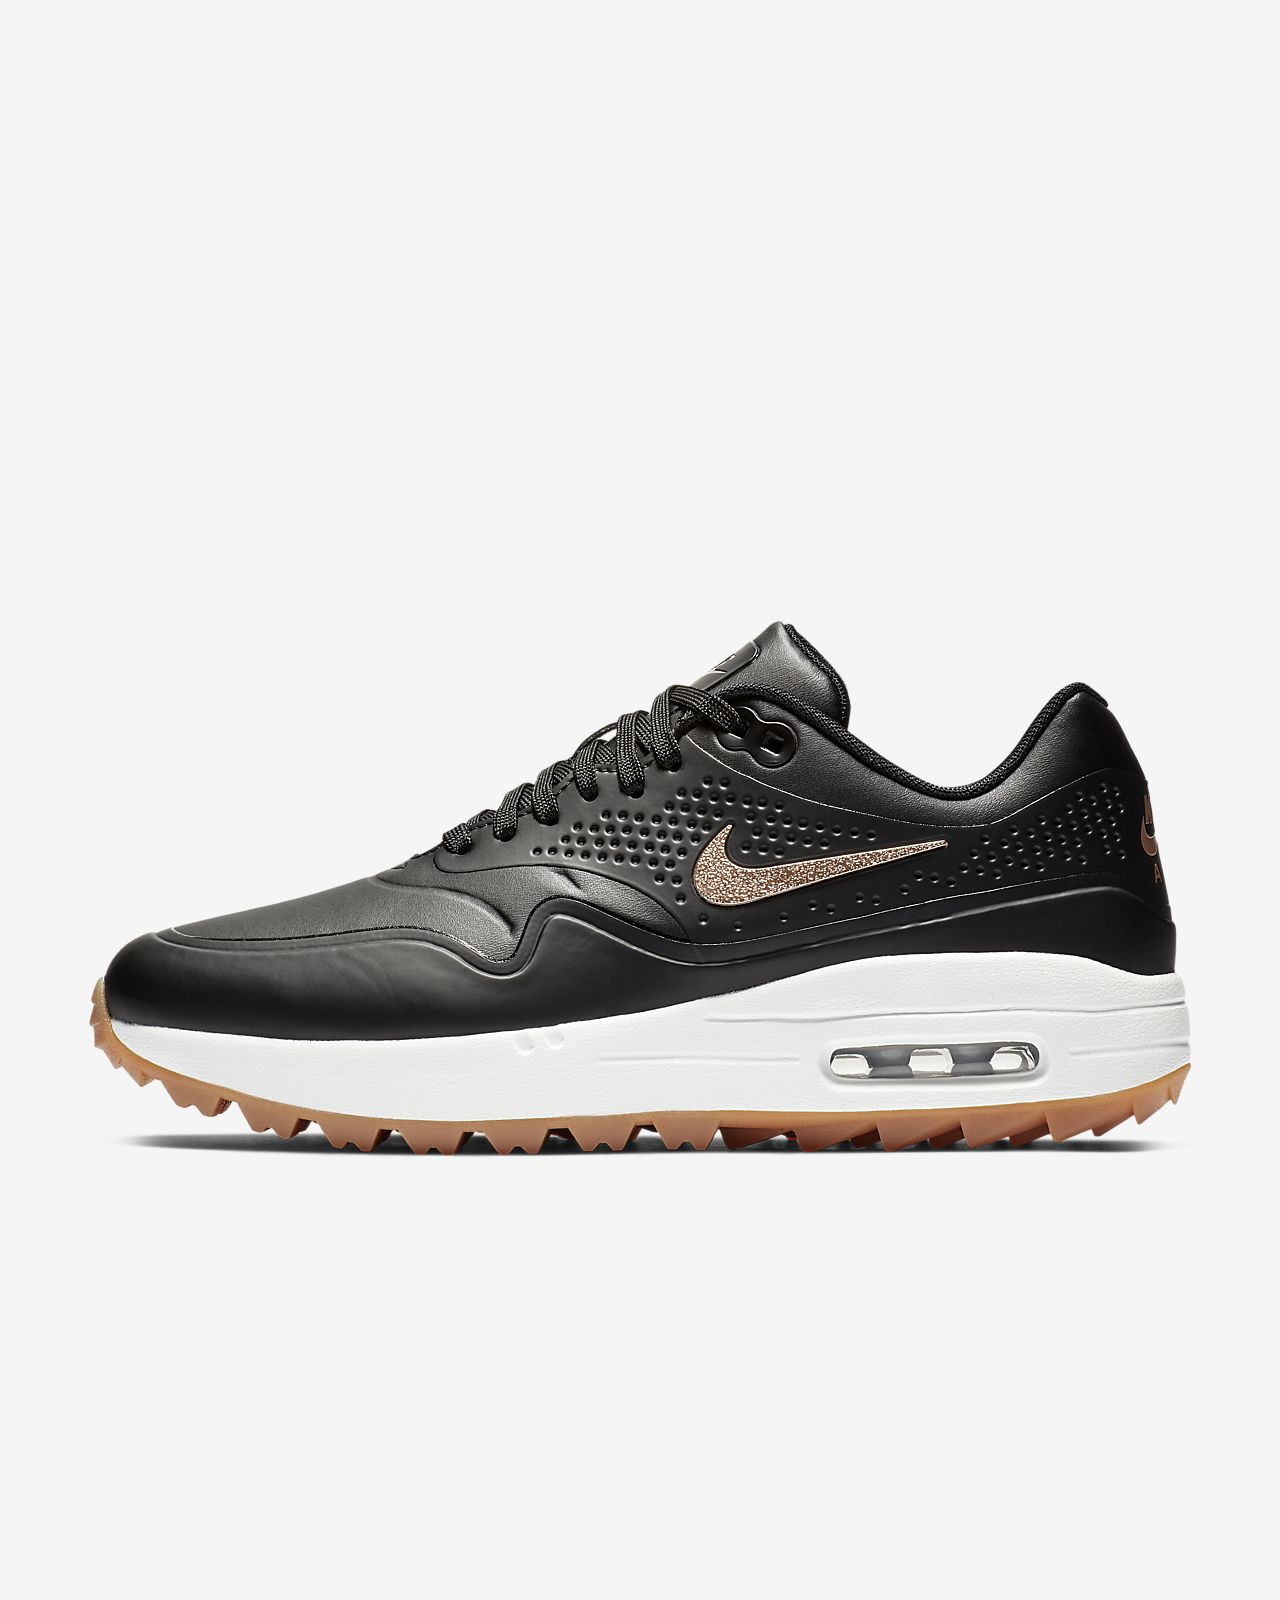 énorme réduction b3f9d b3af2 Nike Air Max 1 G Women's Golf Shoe